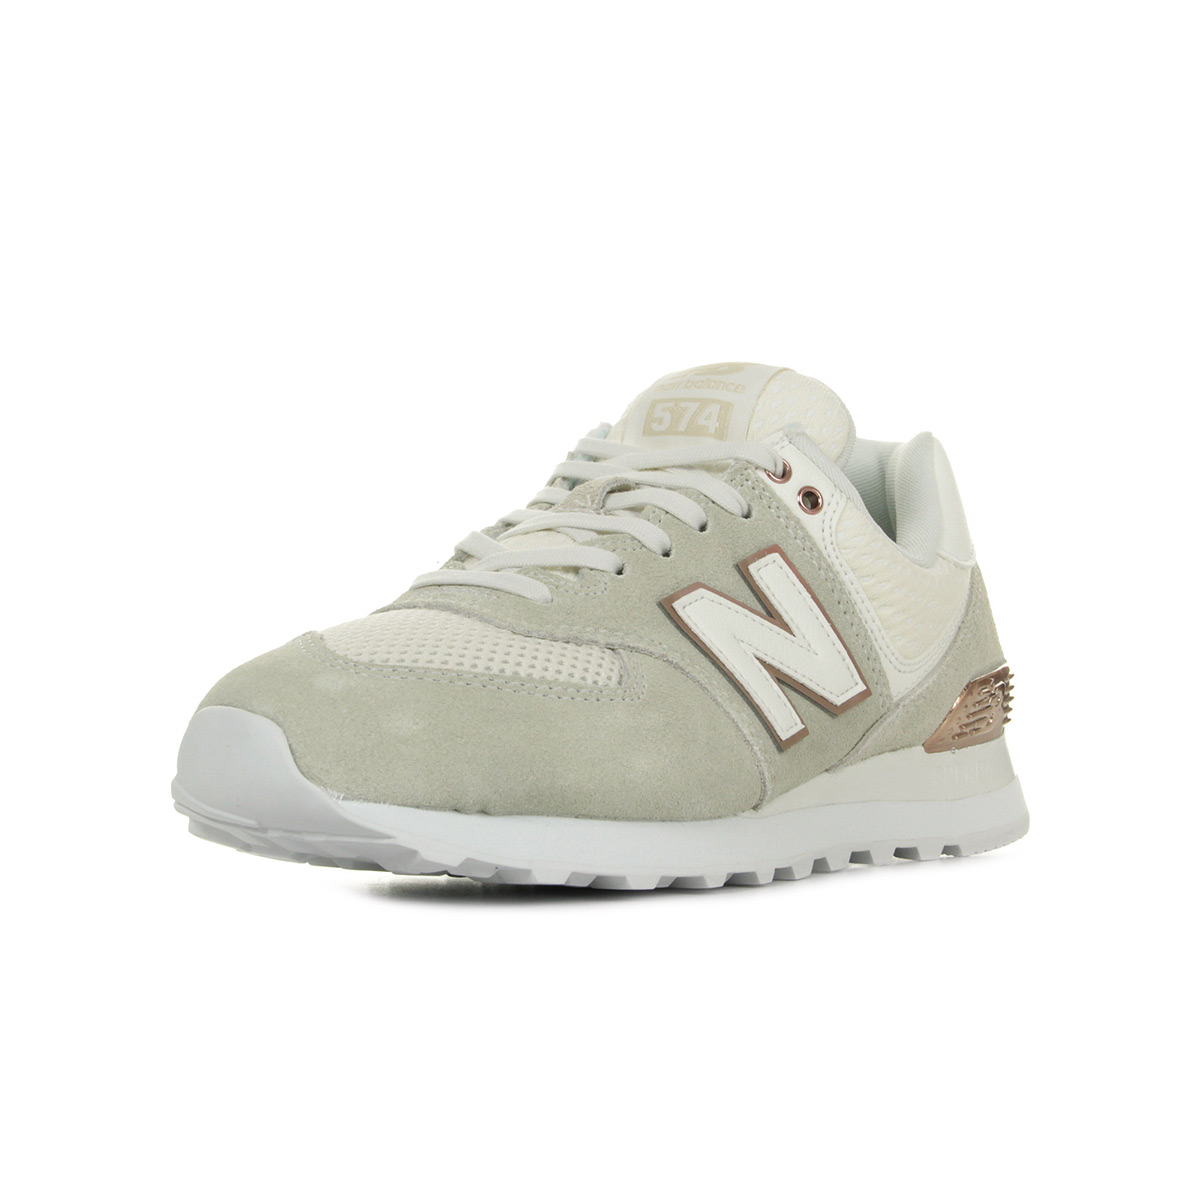 a0f00a07e828 New Balance 574 All Day Rose